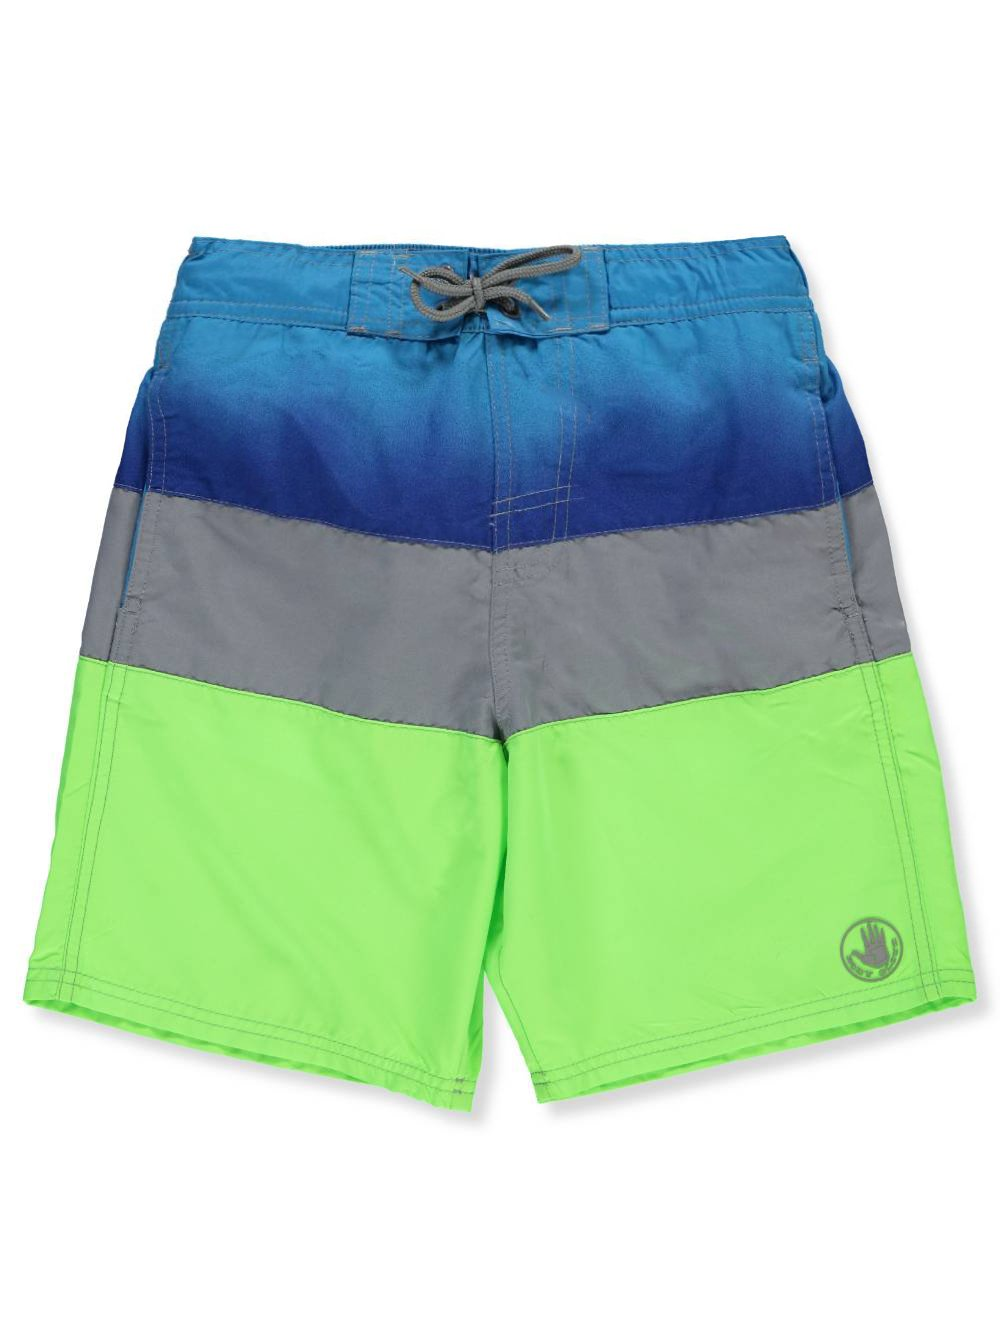 Body Glove Boys' Swim Trunks 18